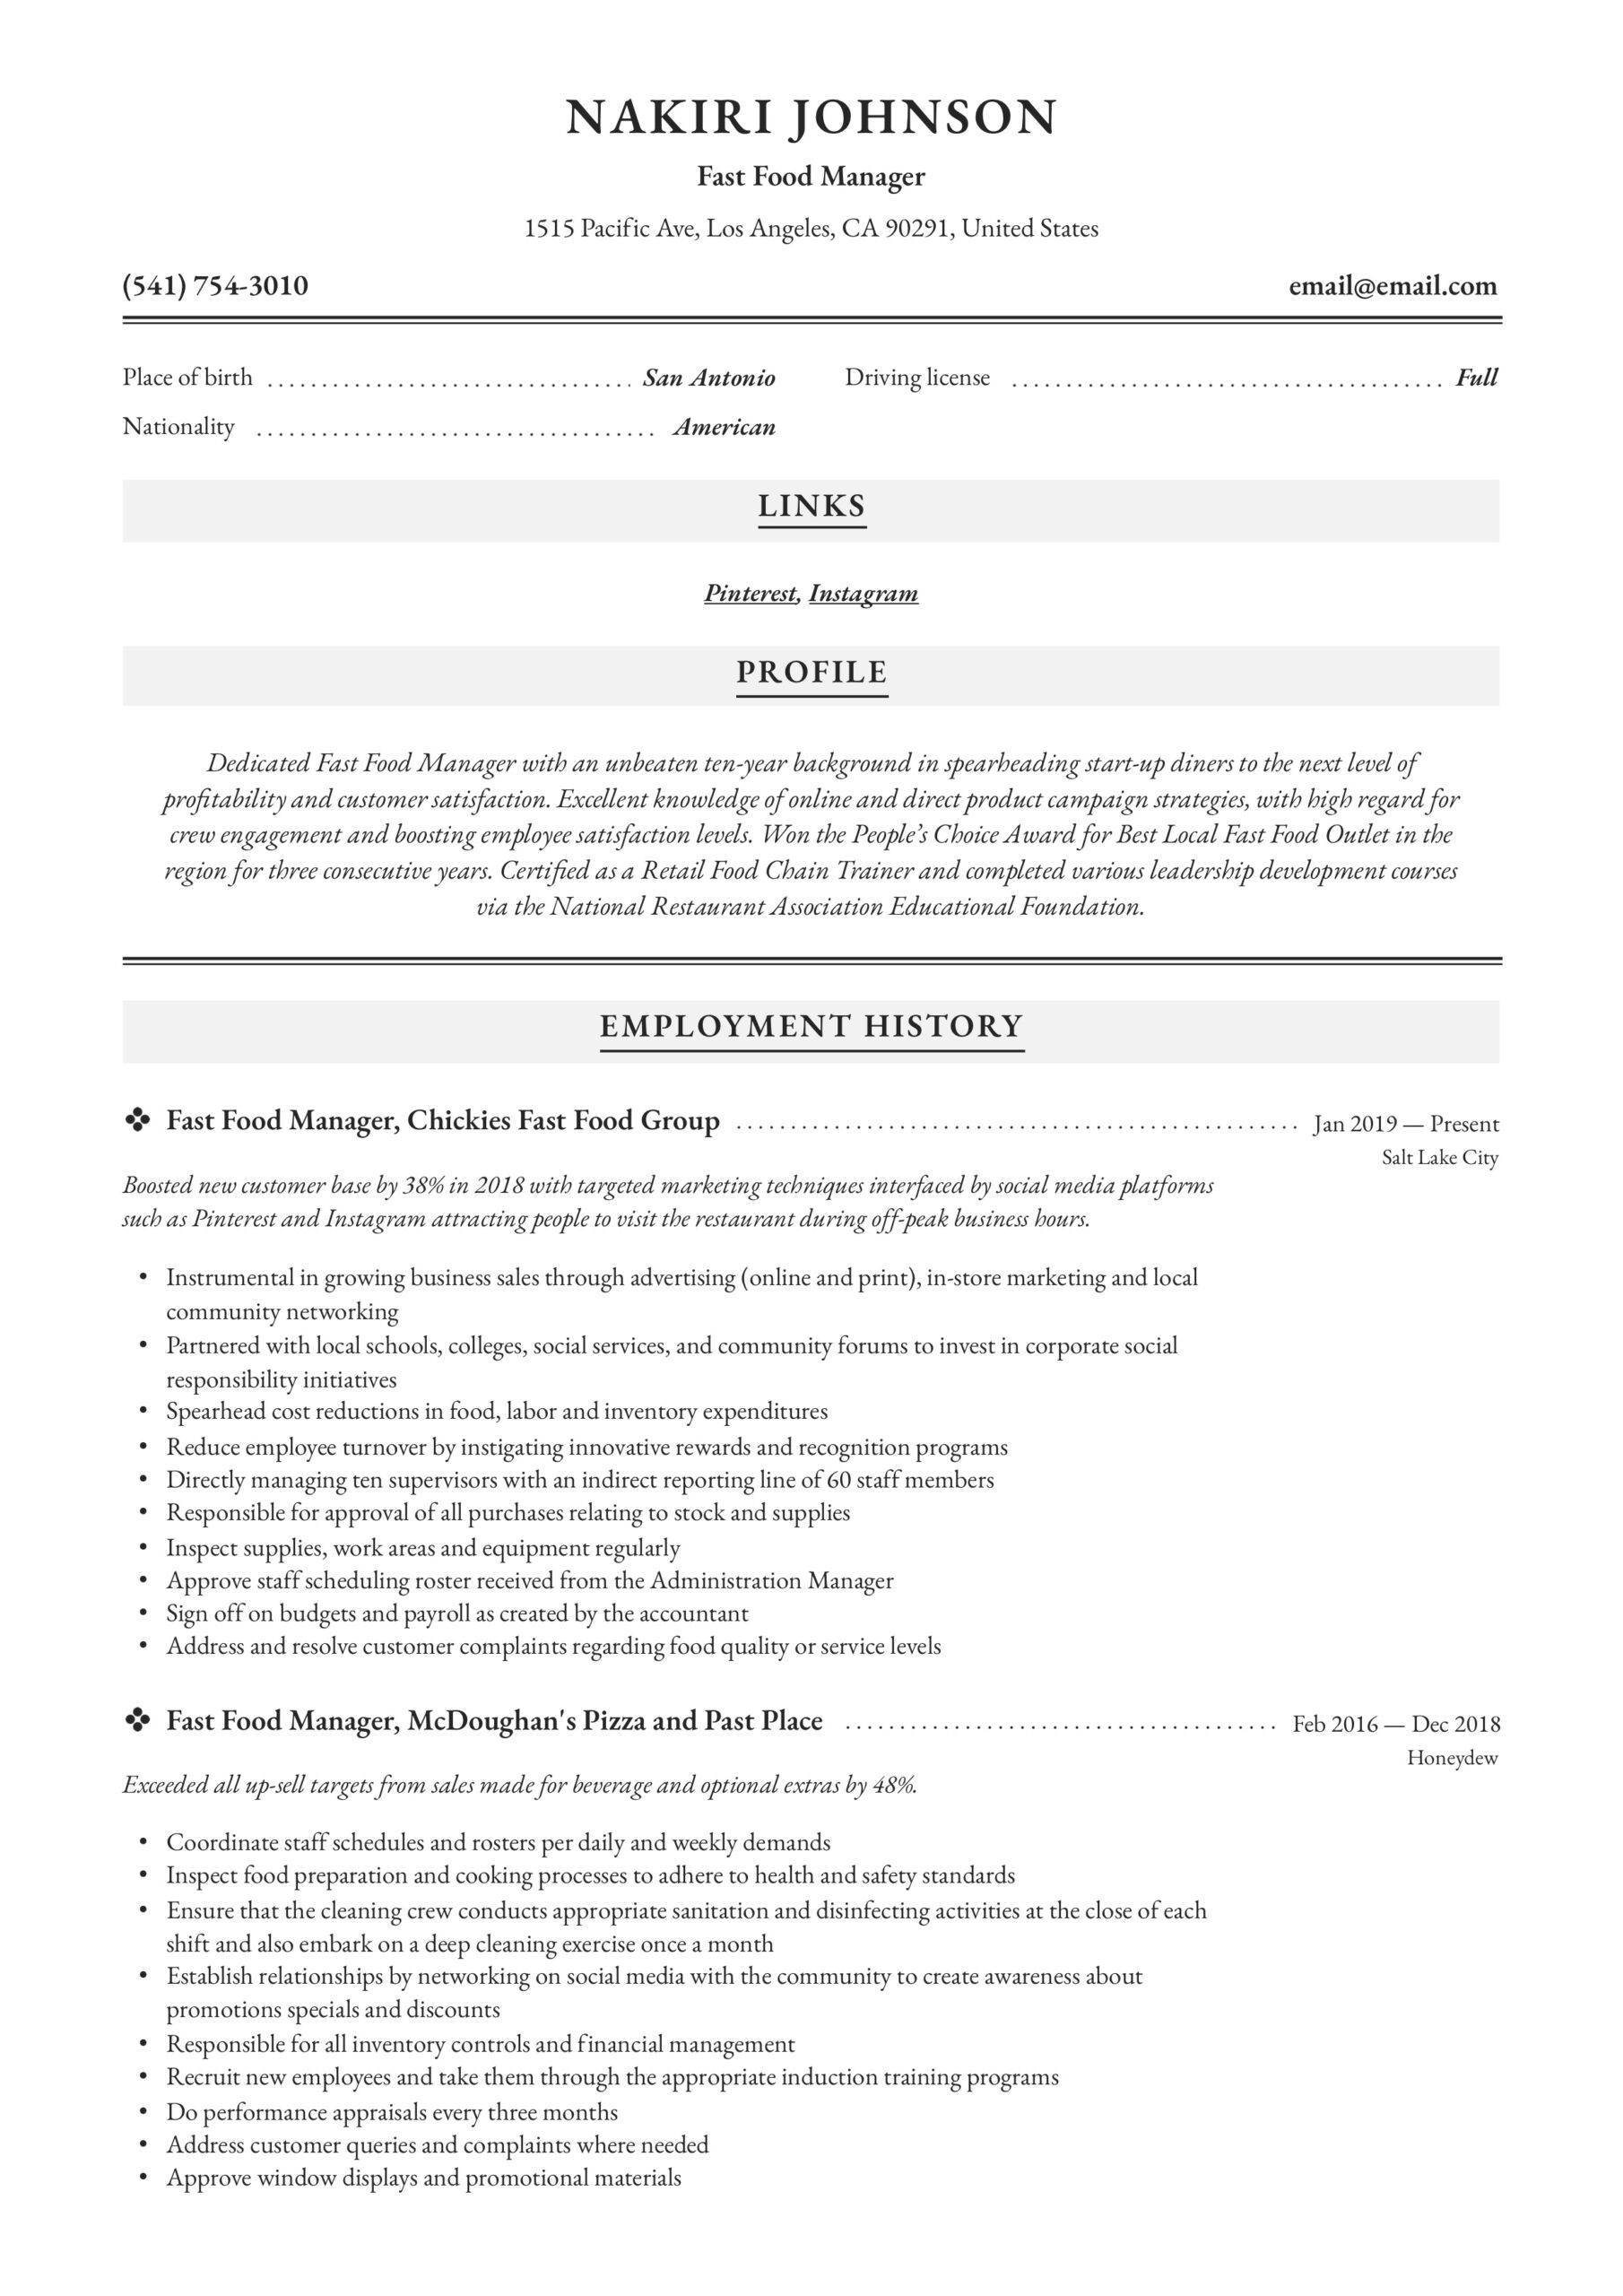 fast food manager resume writing guide examples skills masters level summary for field Resume Fast Food Resume Skills